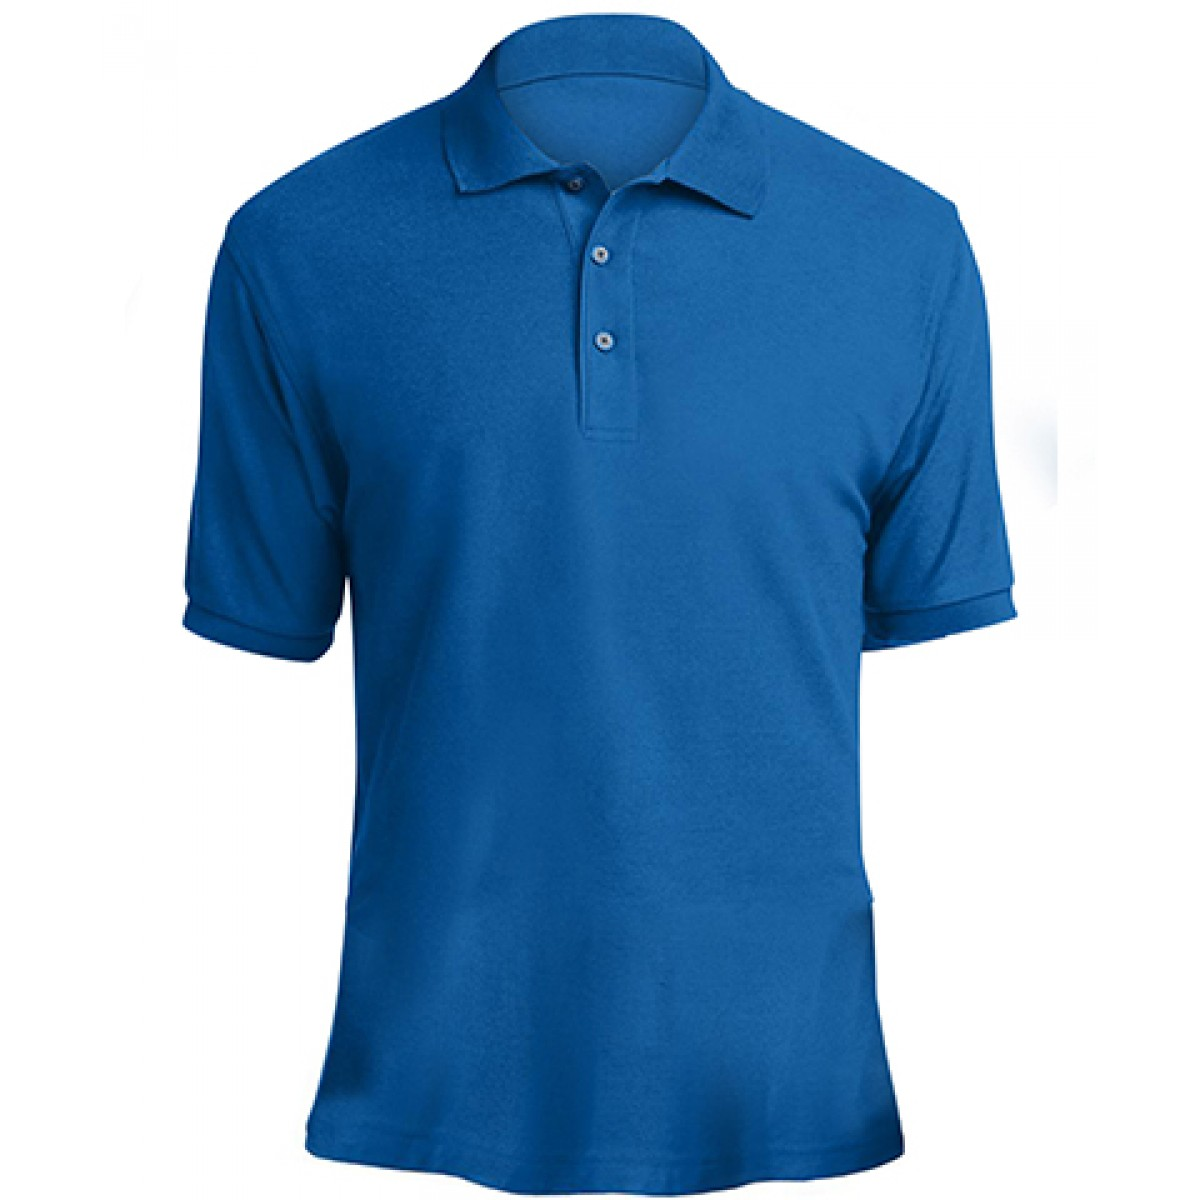 Womens Classic Polo -Royal Blue-YM